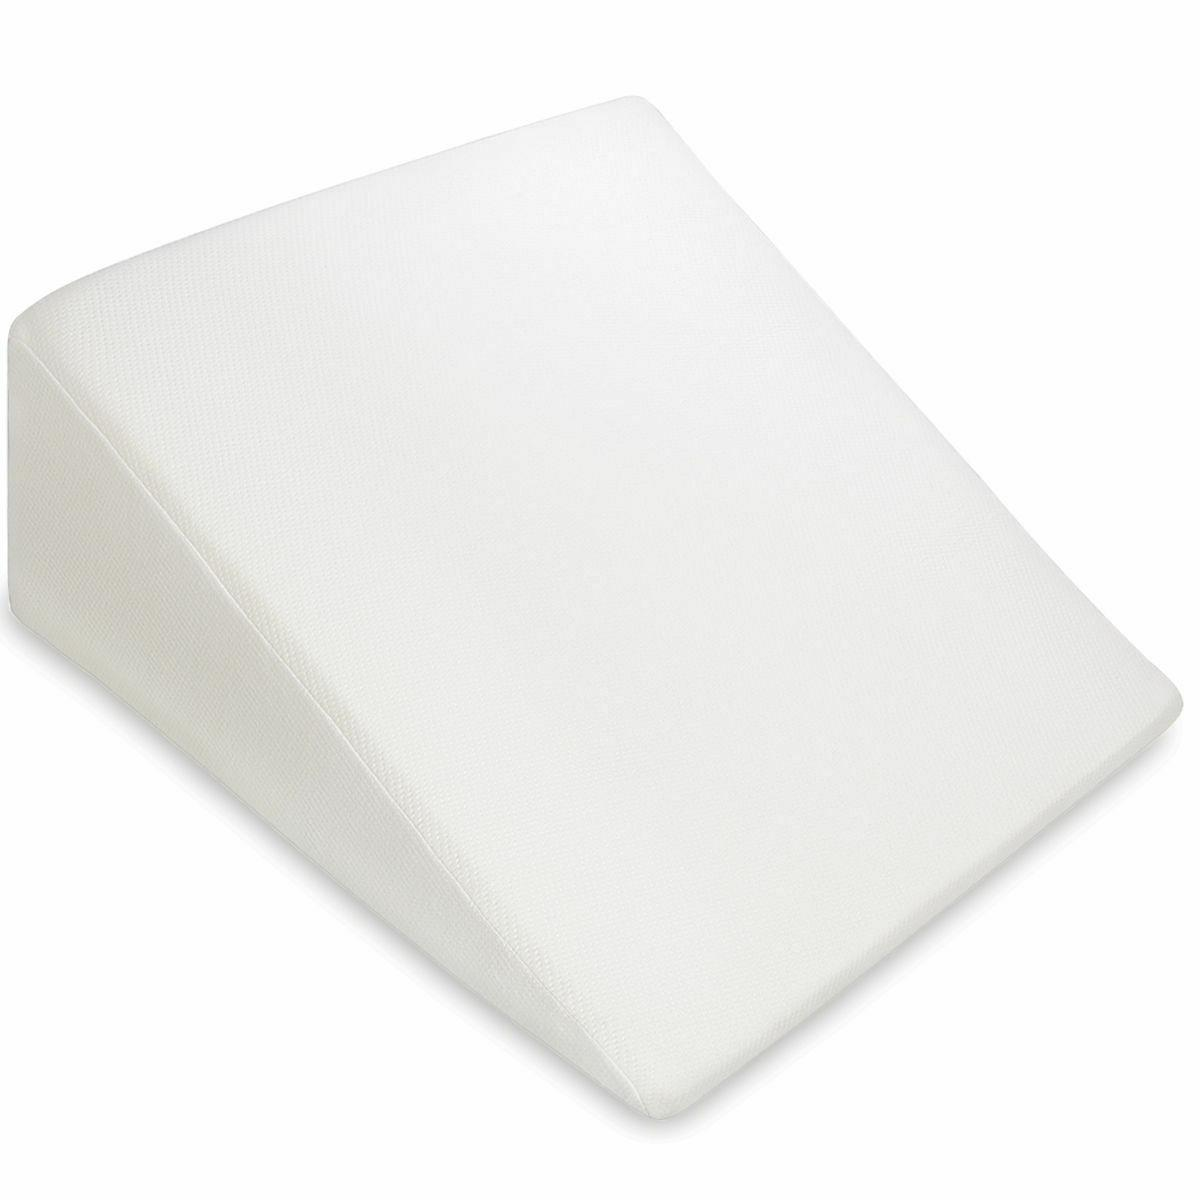 wedge pillow for acid reflux pain support